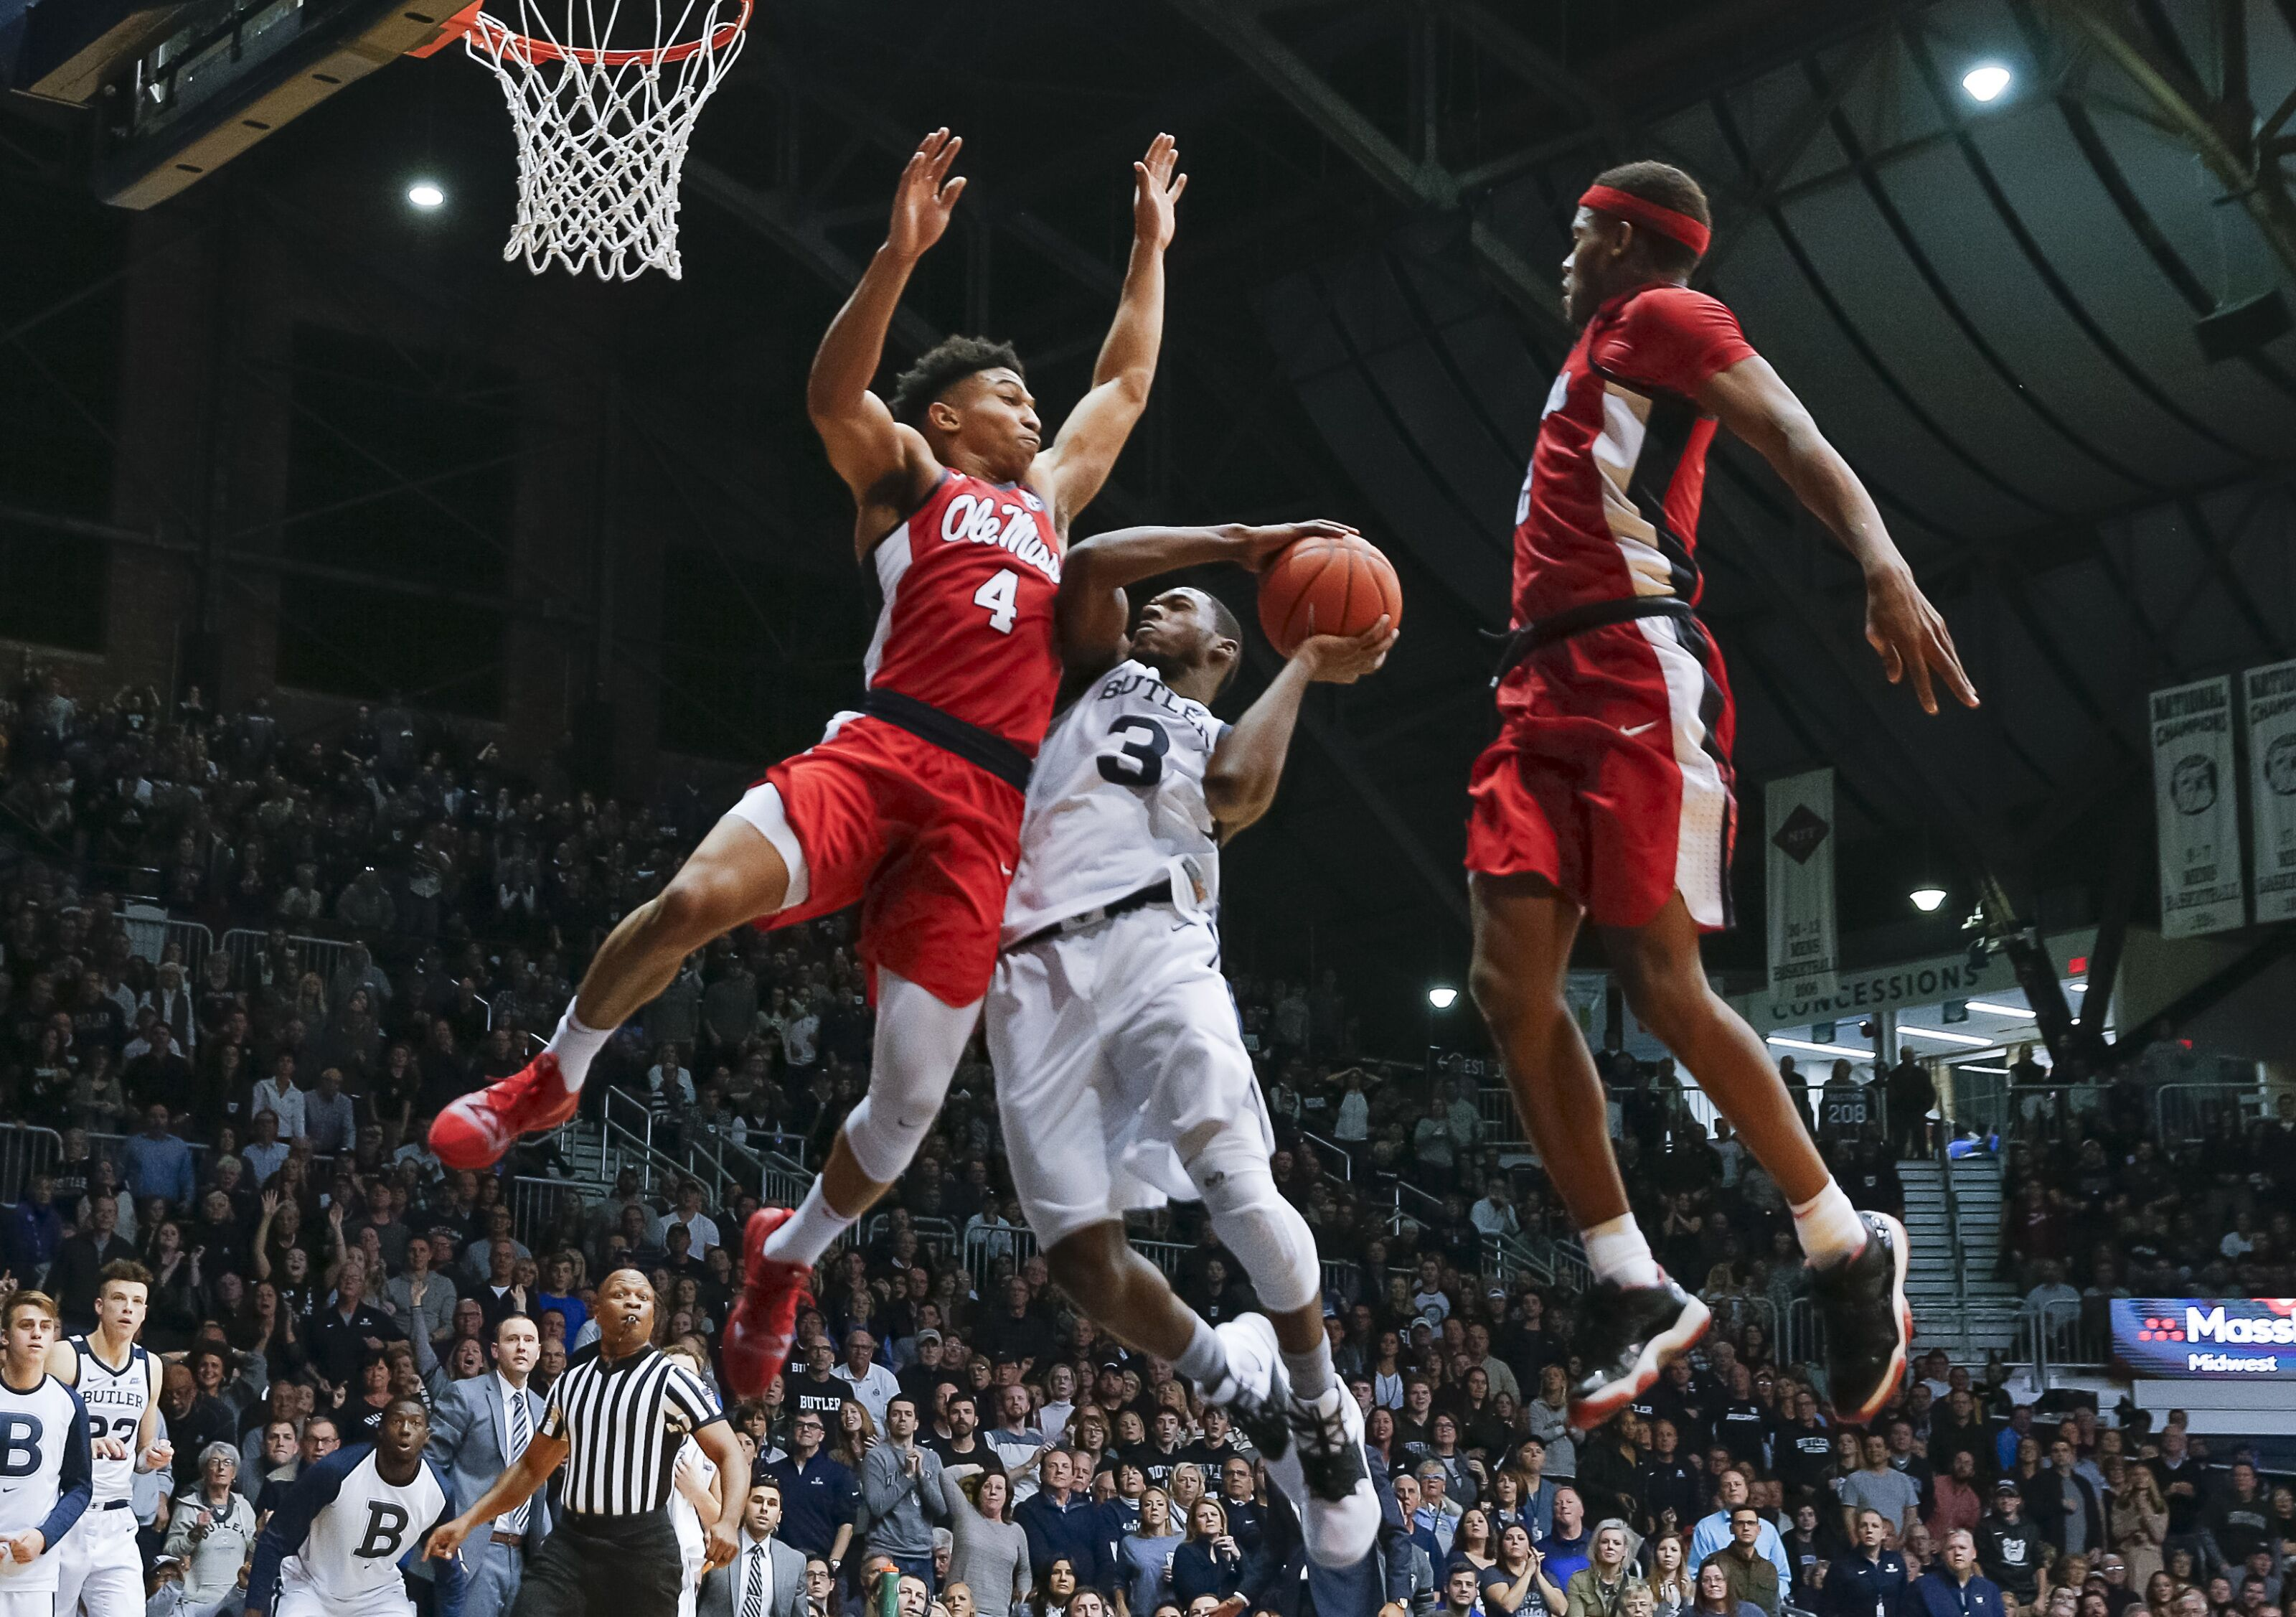 Ole Miss Basketball: Rebels Hoops Fall To Butler In Indy